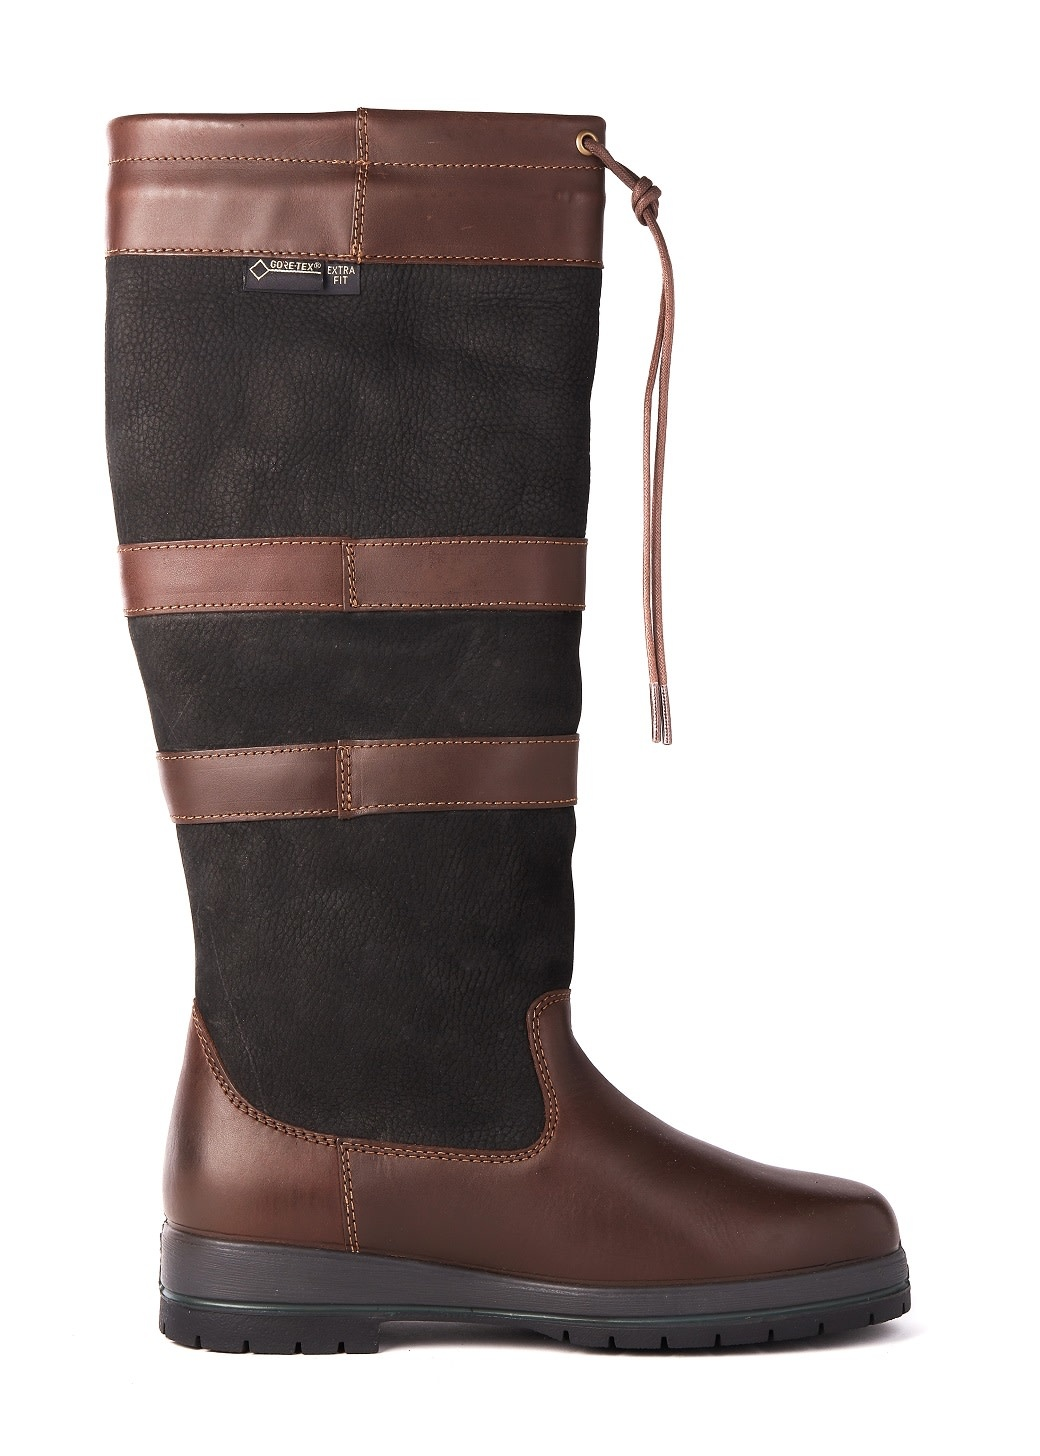 Dubarry Galway Extrafit™- Black/Brown-5